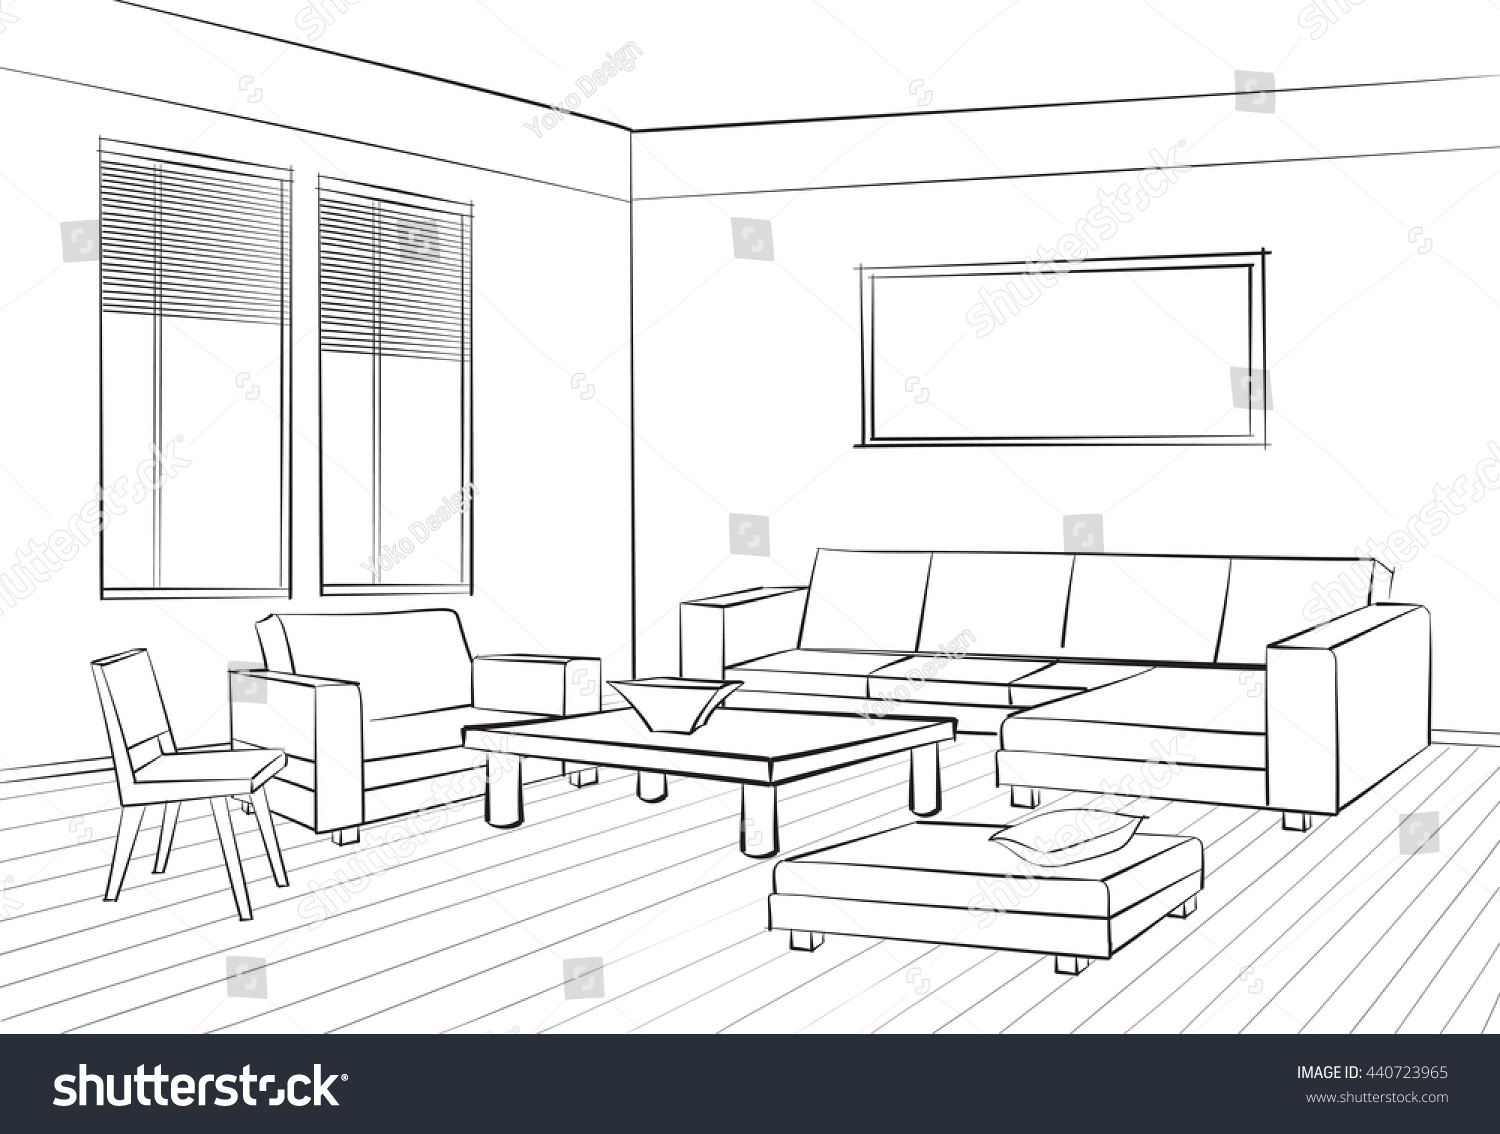 Home interior furniture sofa armchair table stock vector for Drawing room layout design